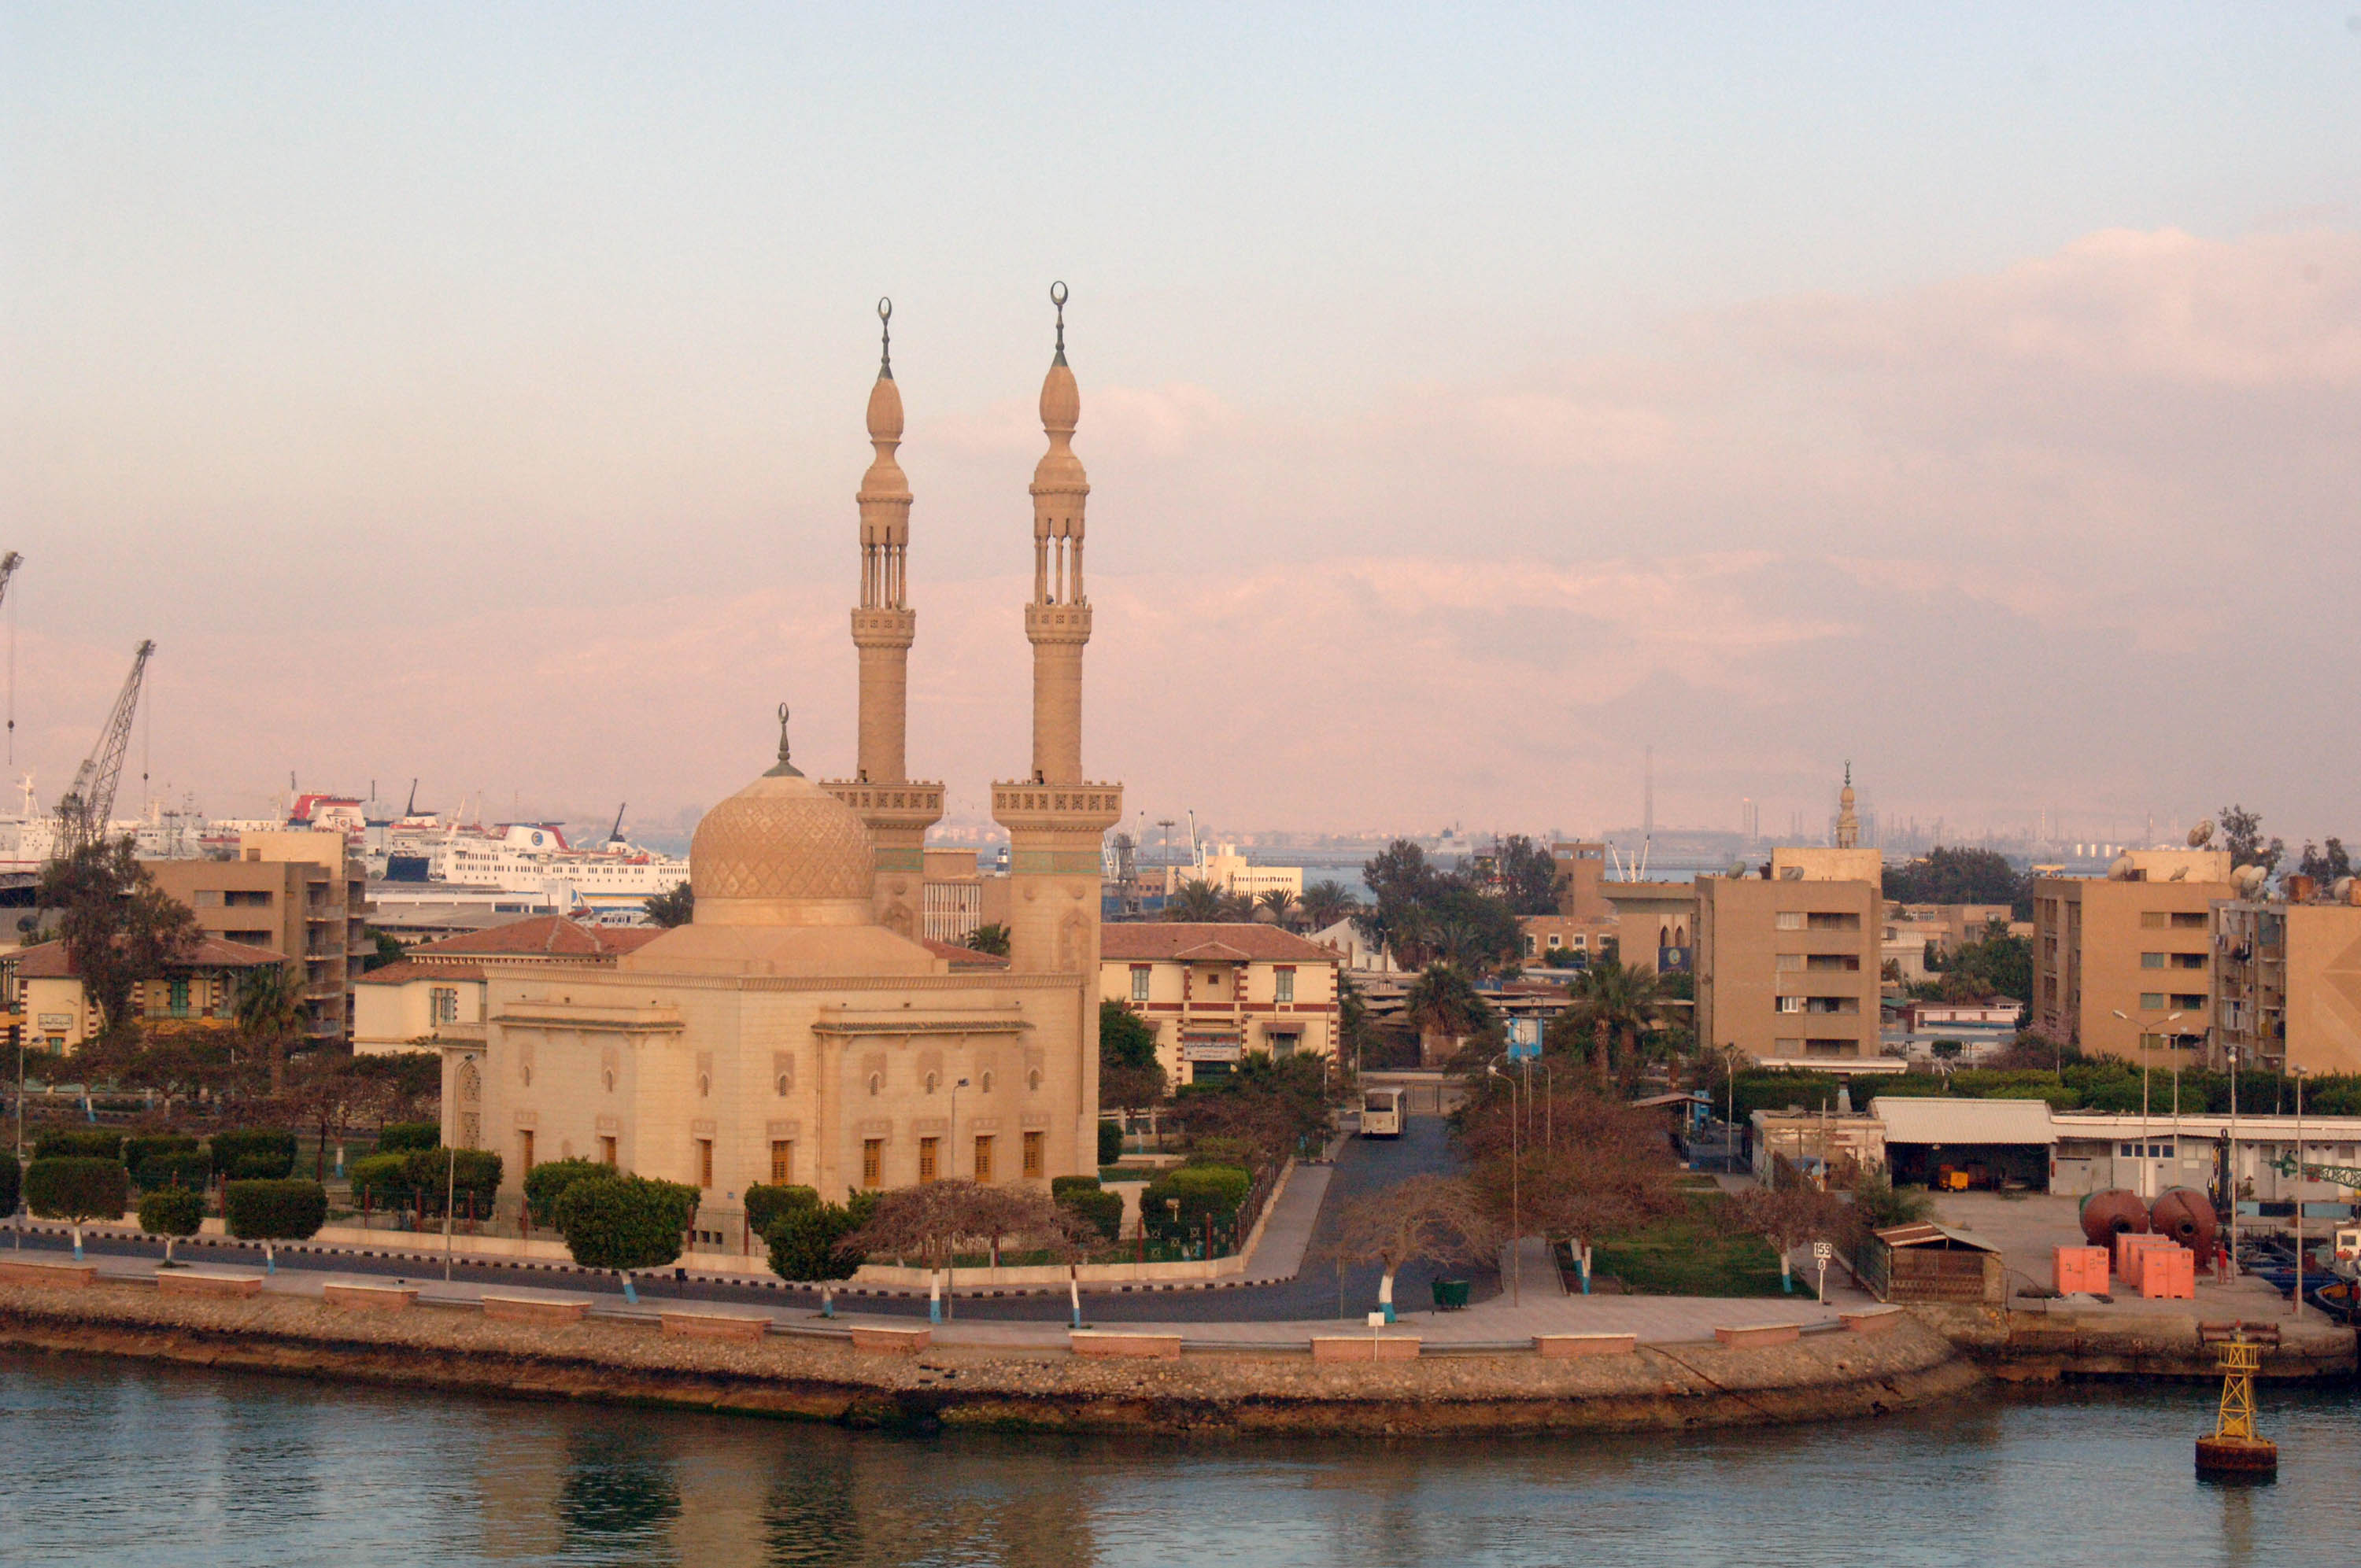 Suez Egypt  city photos gallery : Description CITY OF SUEZ, EGYPT